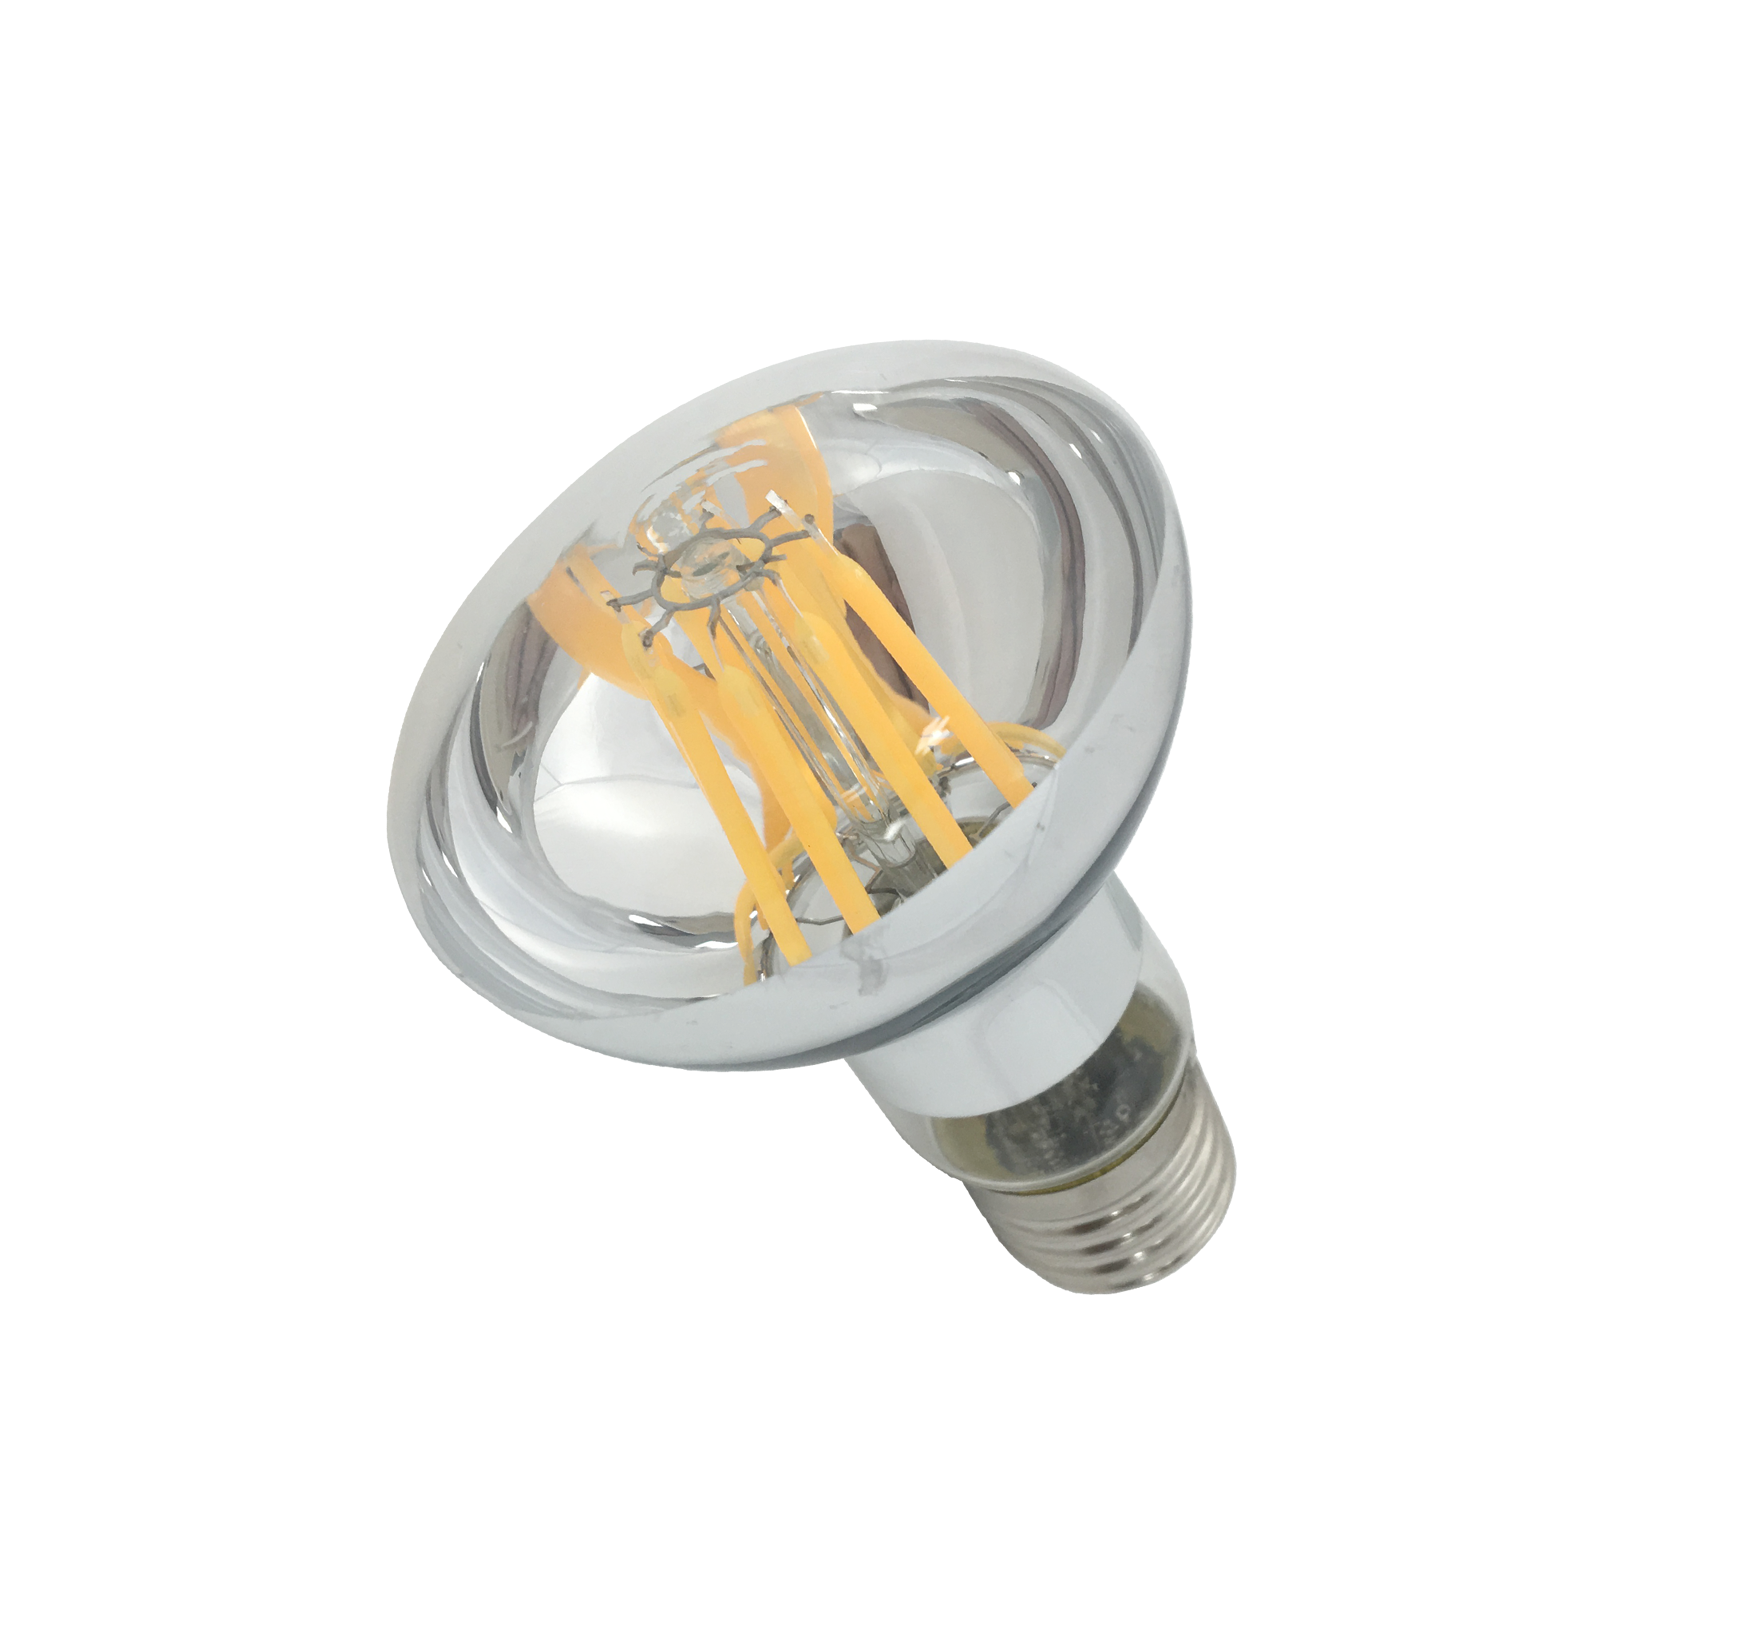 JustLED – R50 Reflector LED Spot Light Bulb - E14 [Energy Class A++]